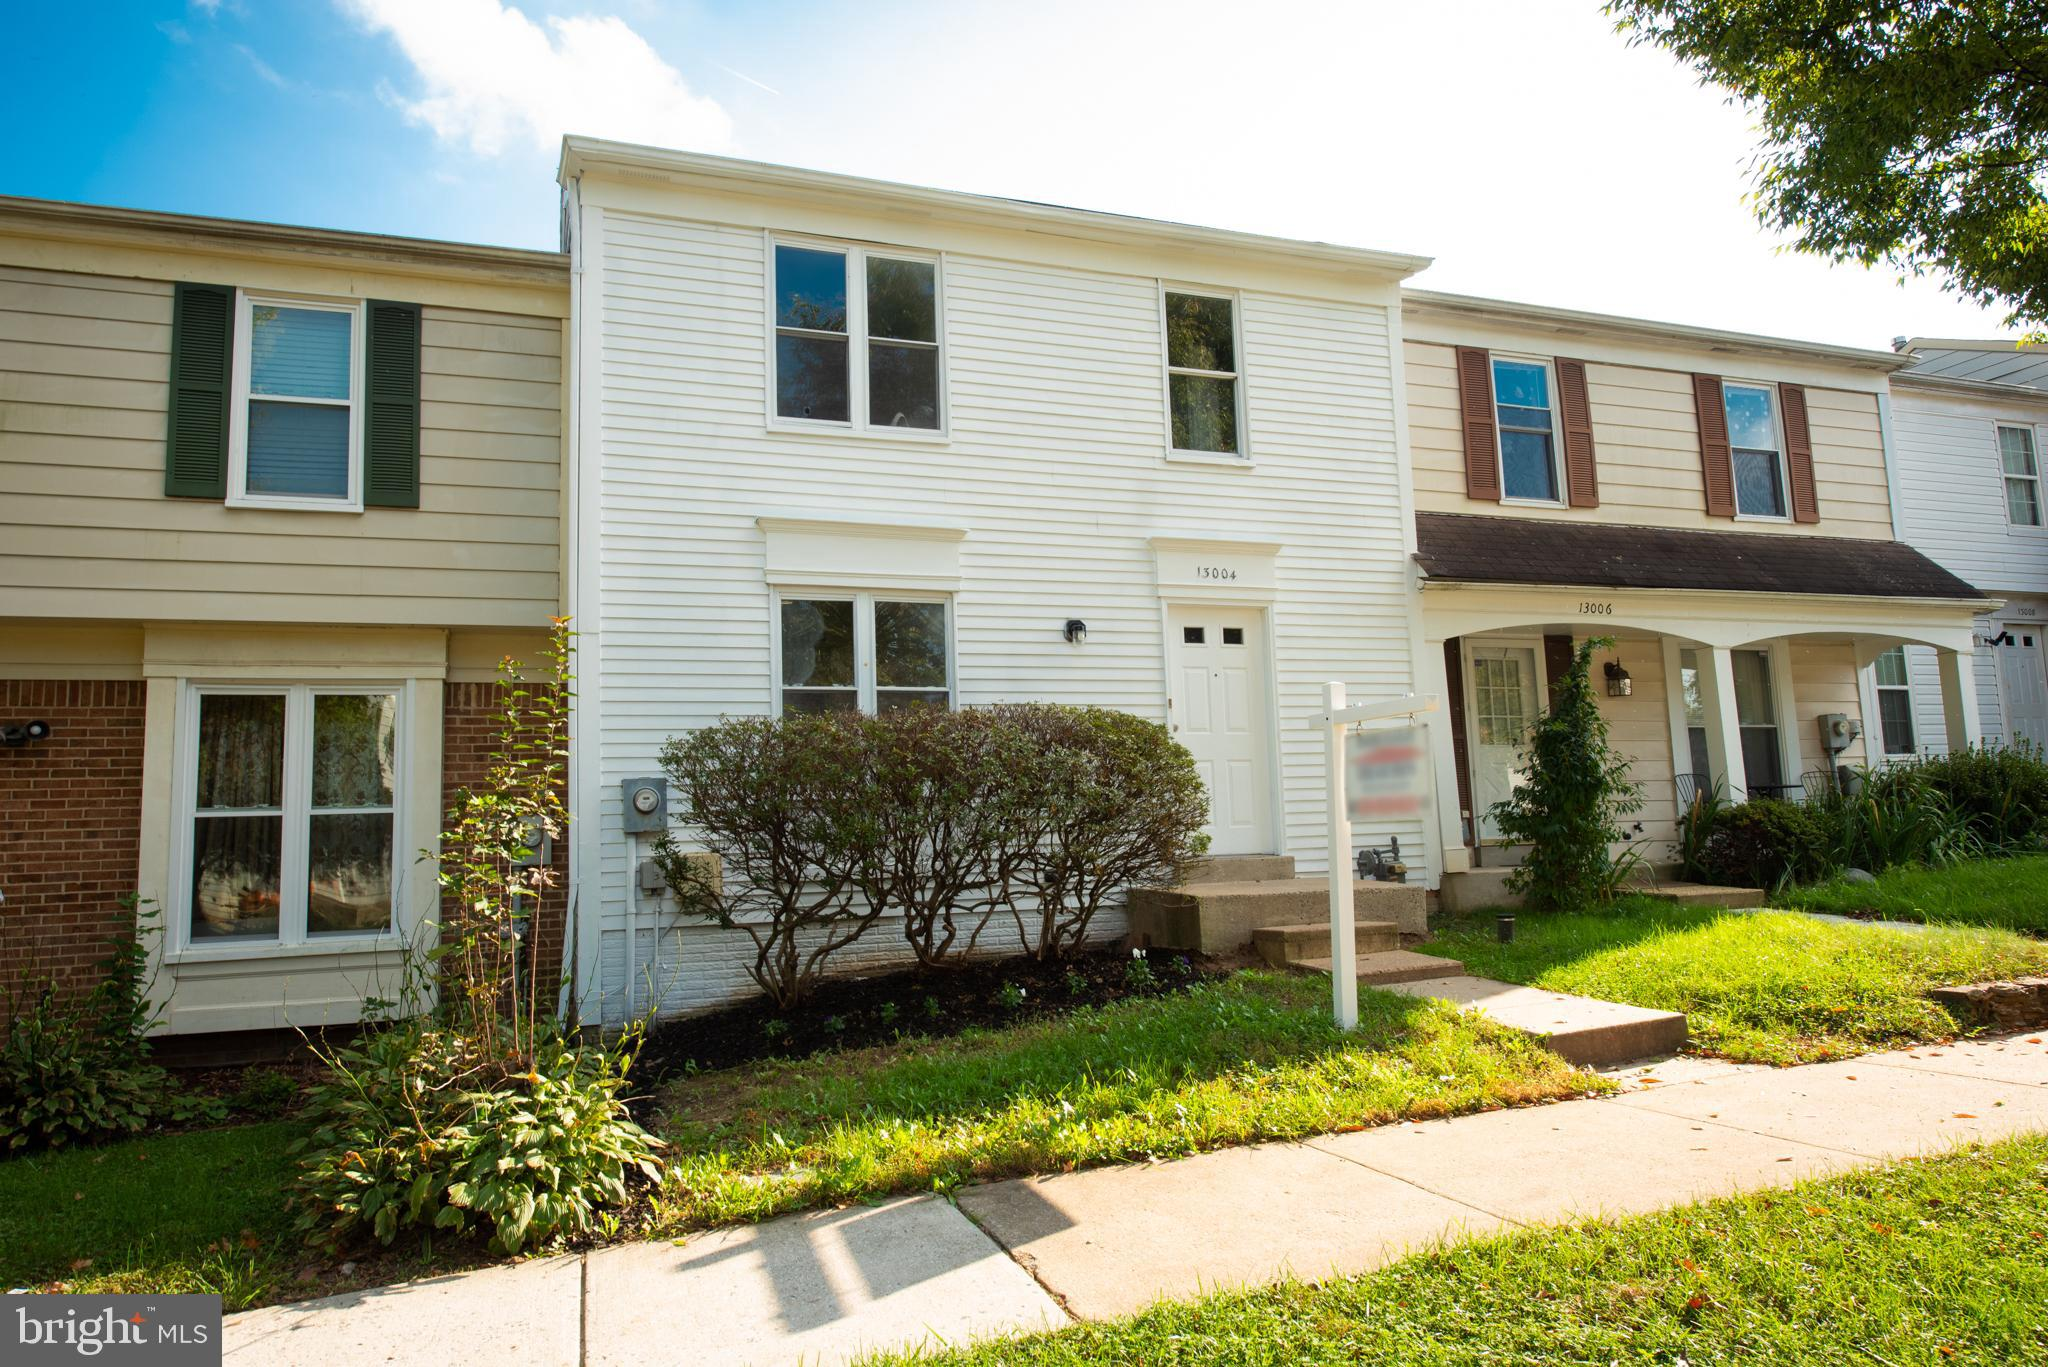 OPEN HOUSE Sun, Oct 24 11:00 AM - 2:00 PM! 50k+ worth of updates! Freshly painted. Renovated bathroo